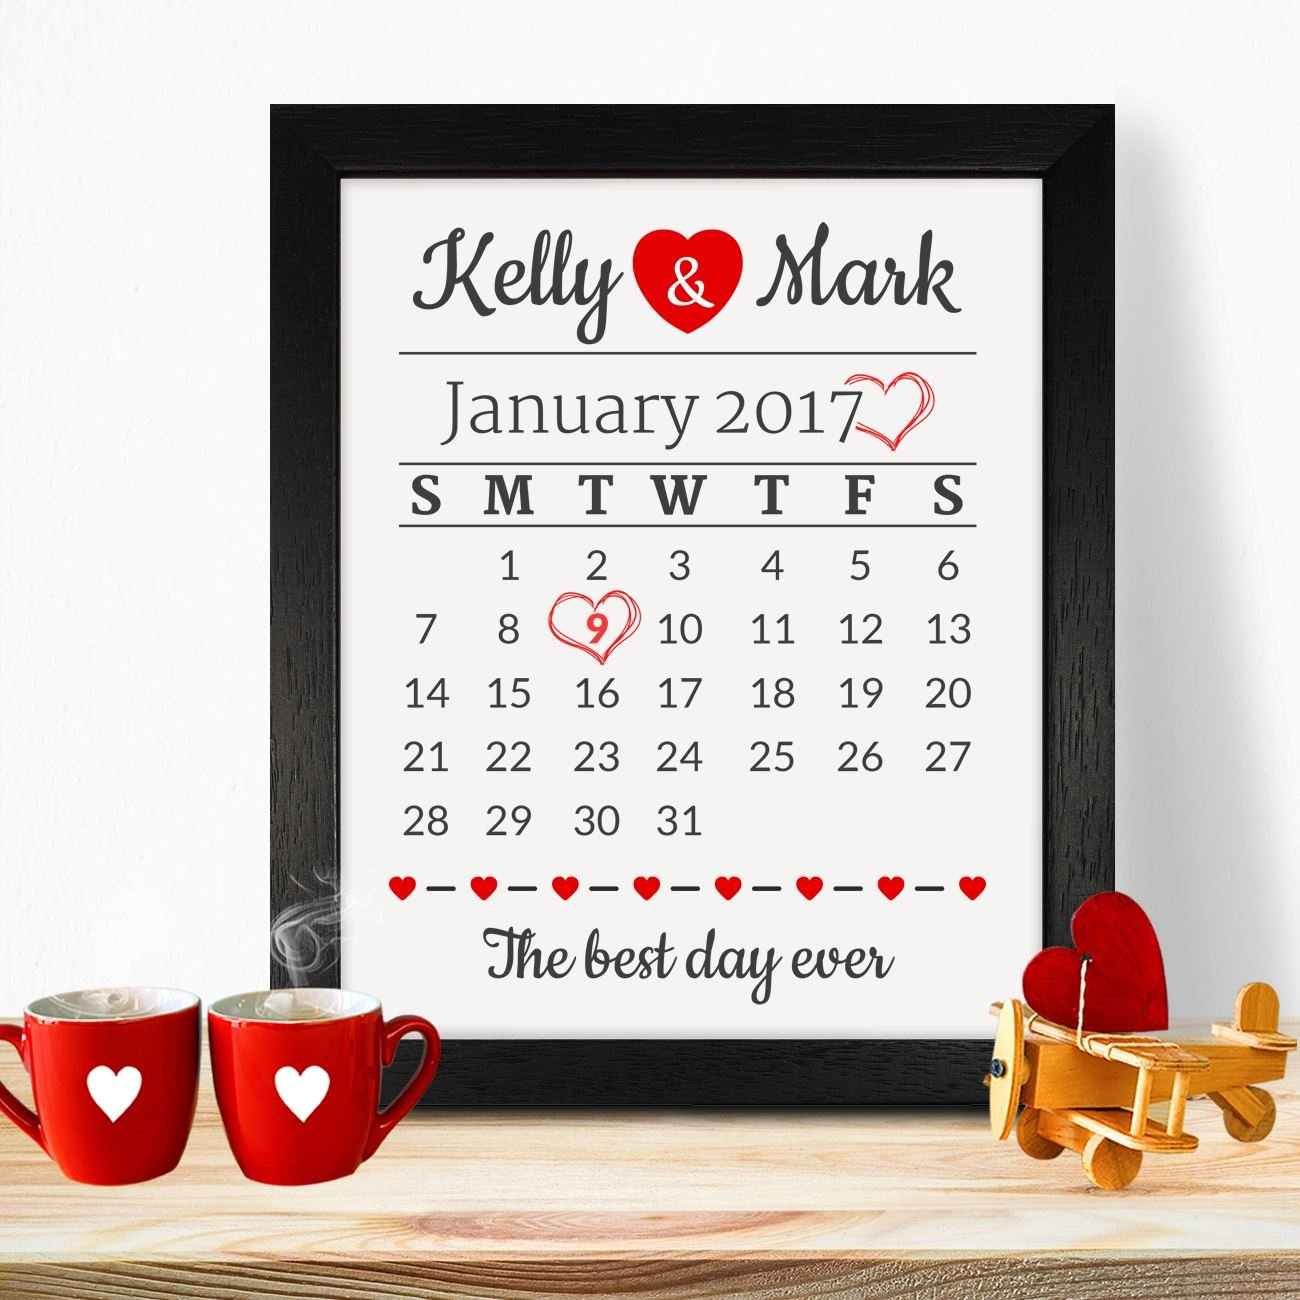 Personalised Presents Gifts For Him Her Husband Wife Couples